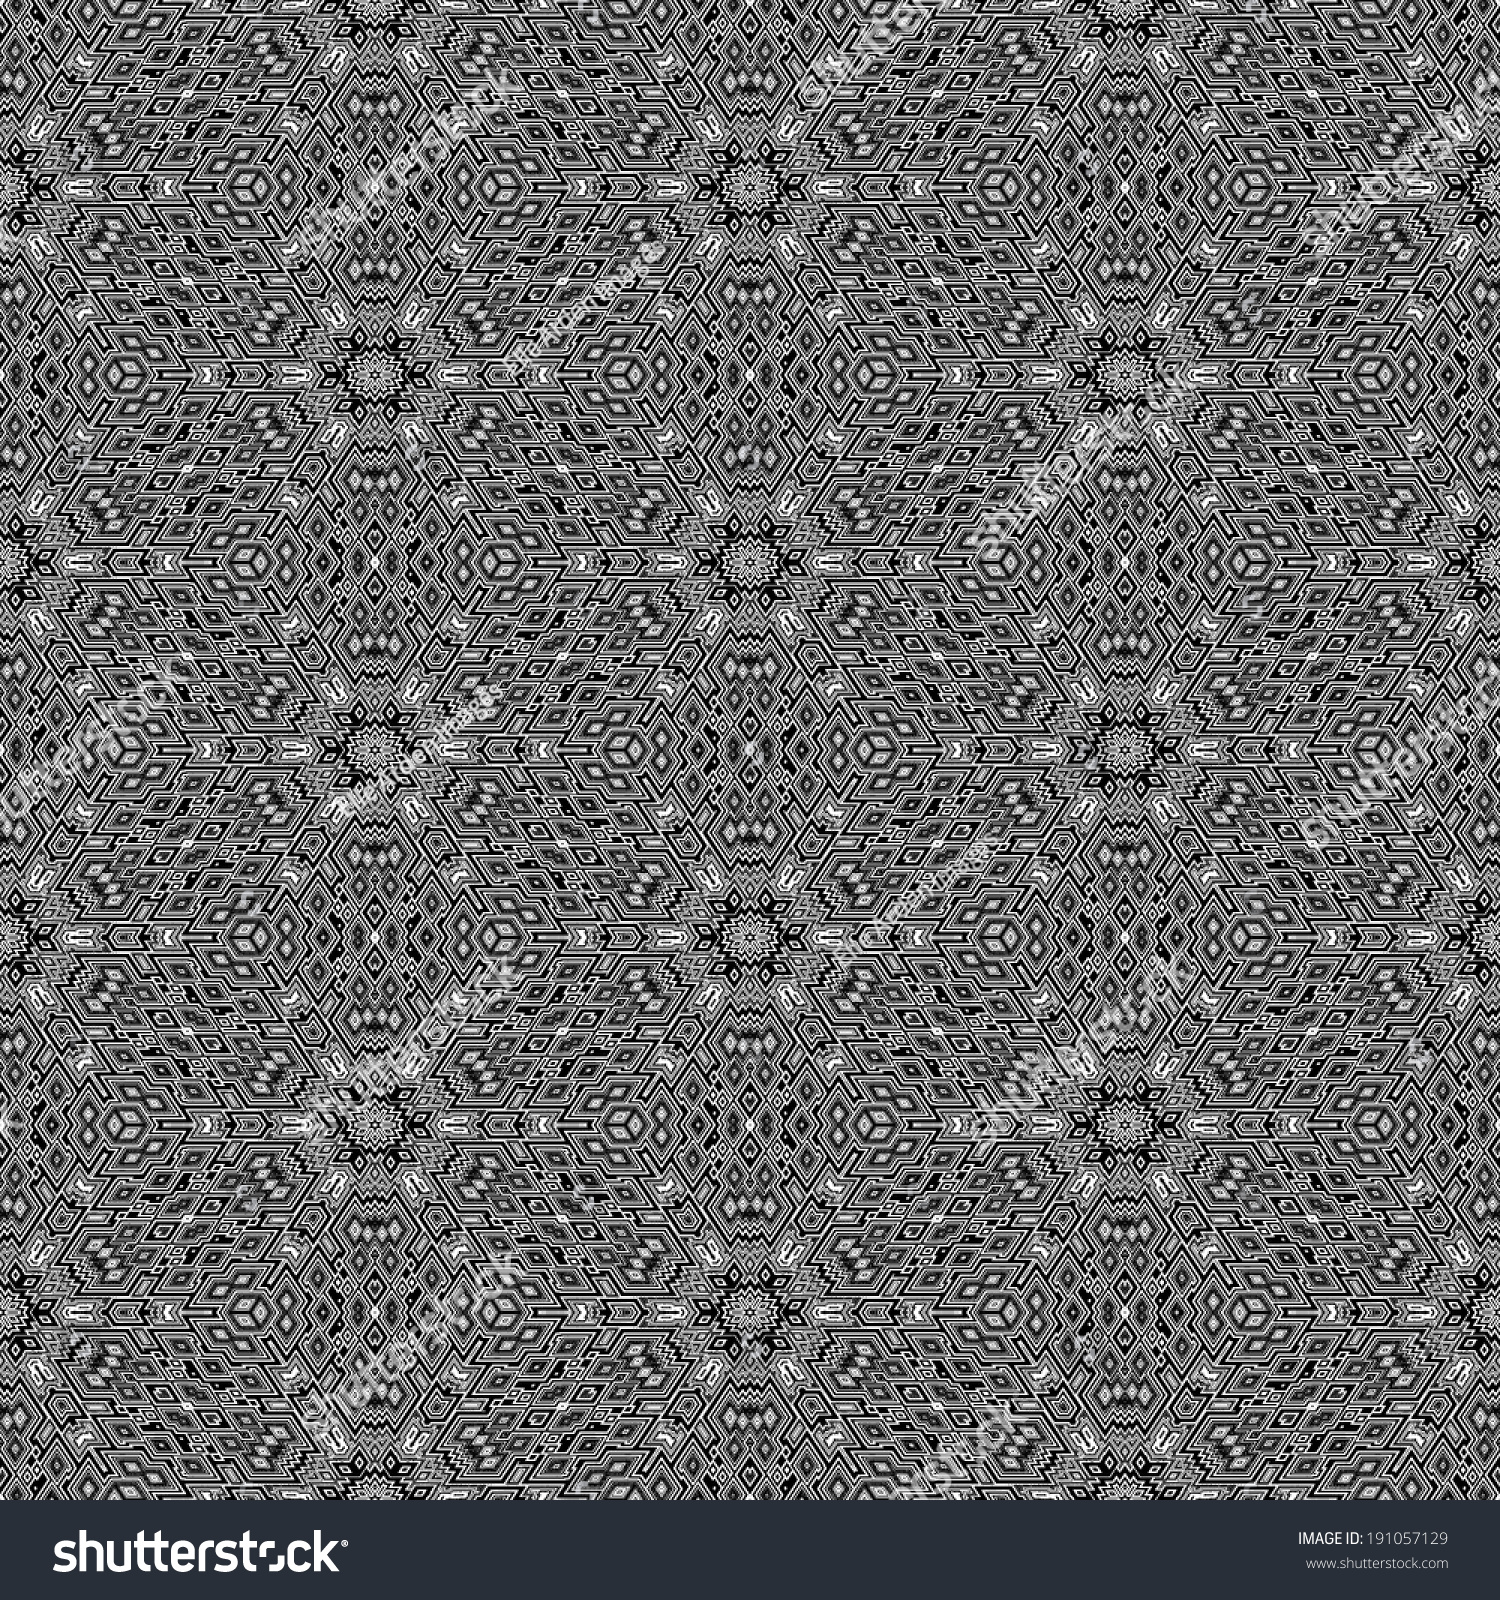 Seamless tile black white abstract pattern stock illustration a seamless tile of a black and white abstract pattern in the style of m c escher doublecrazyfo Images